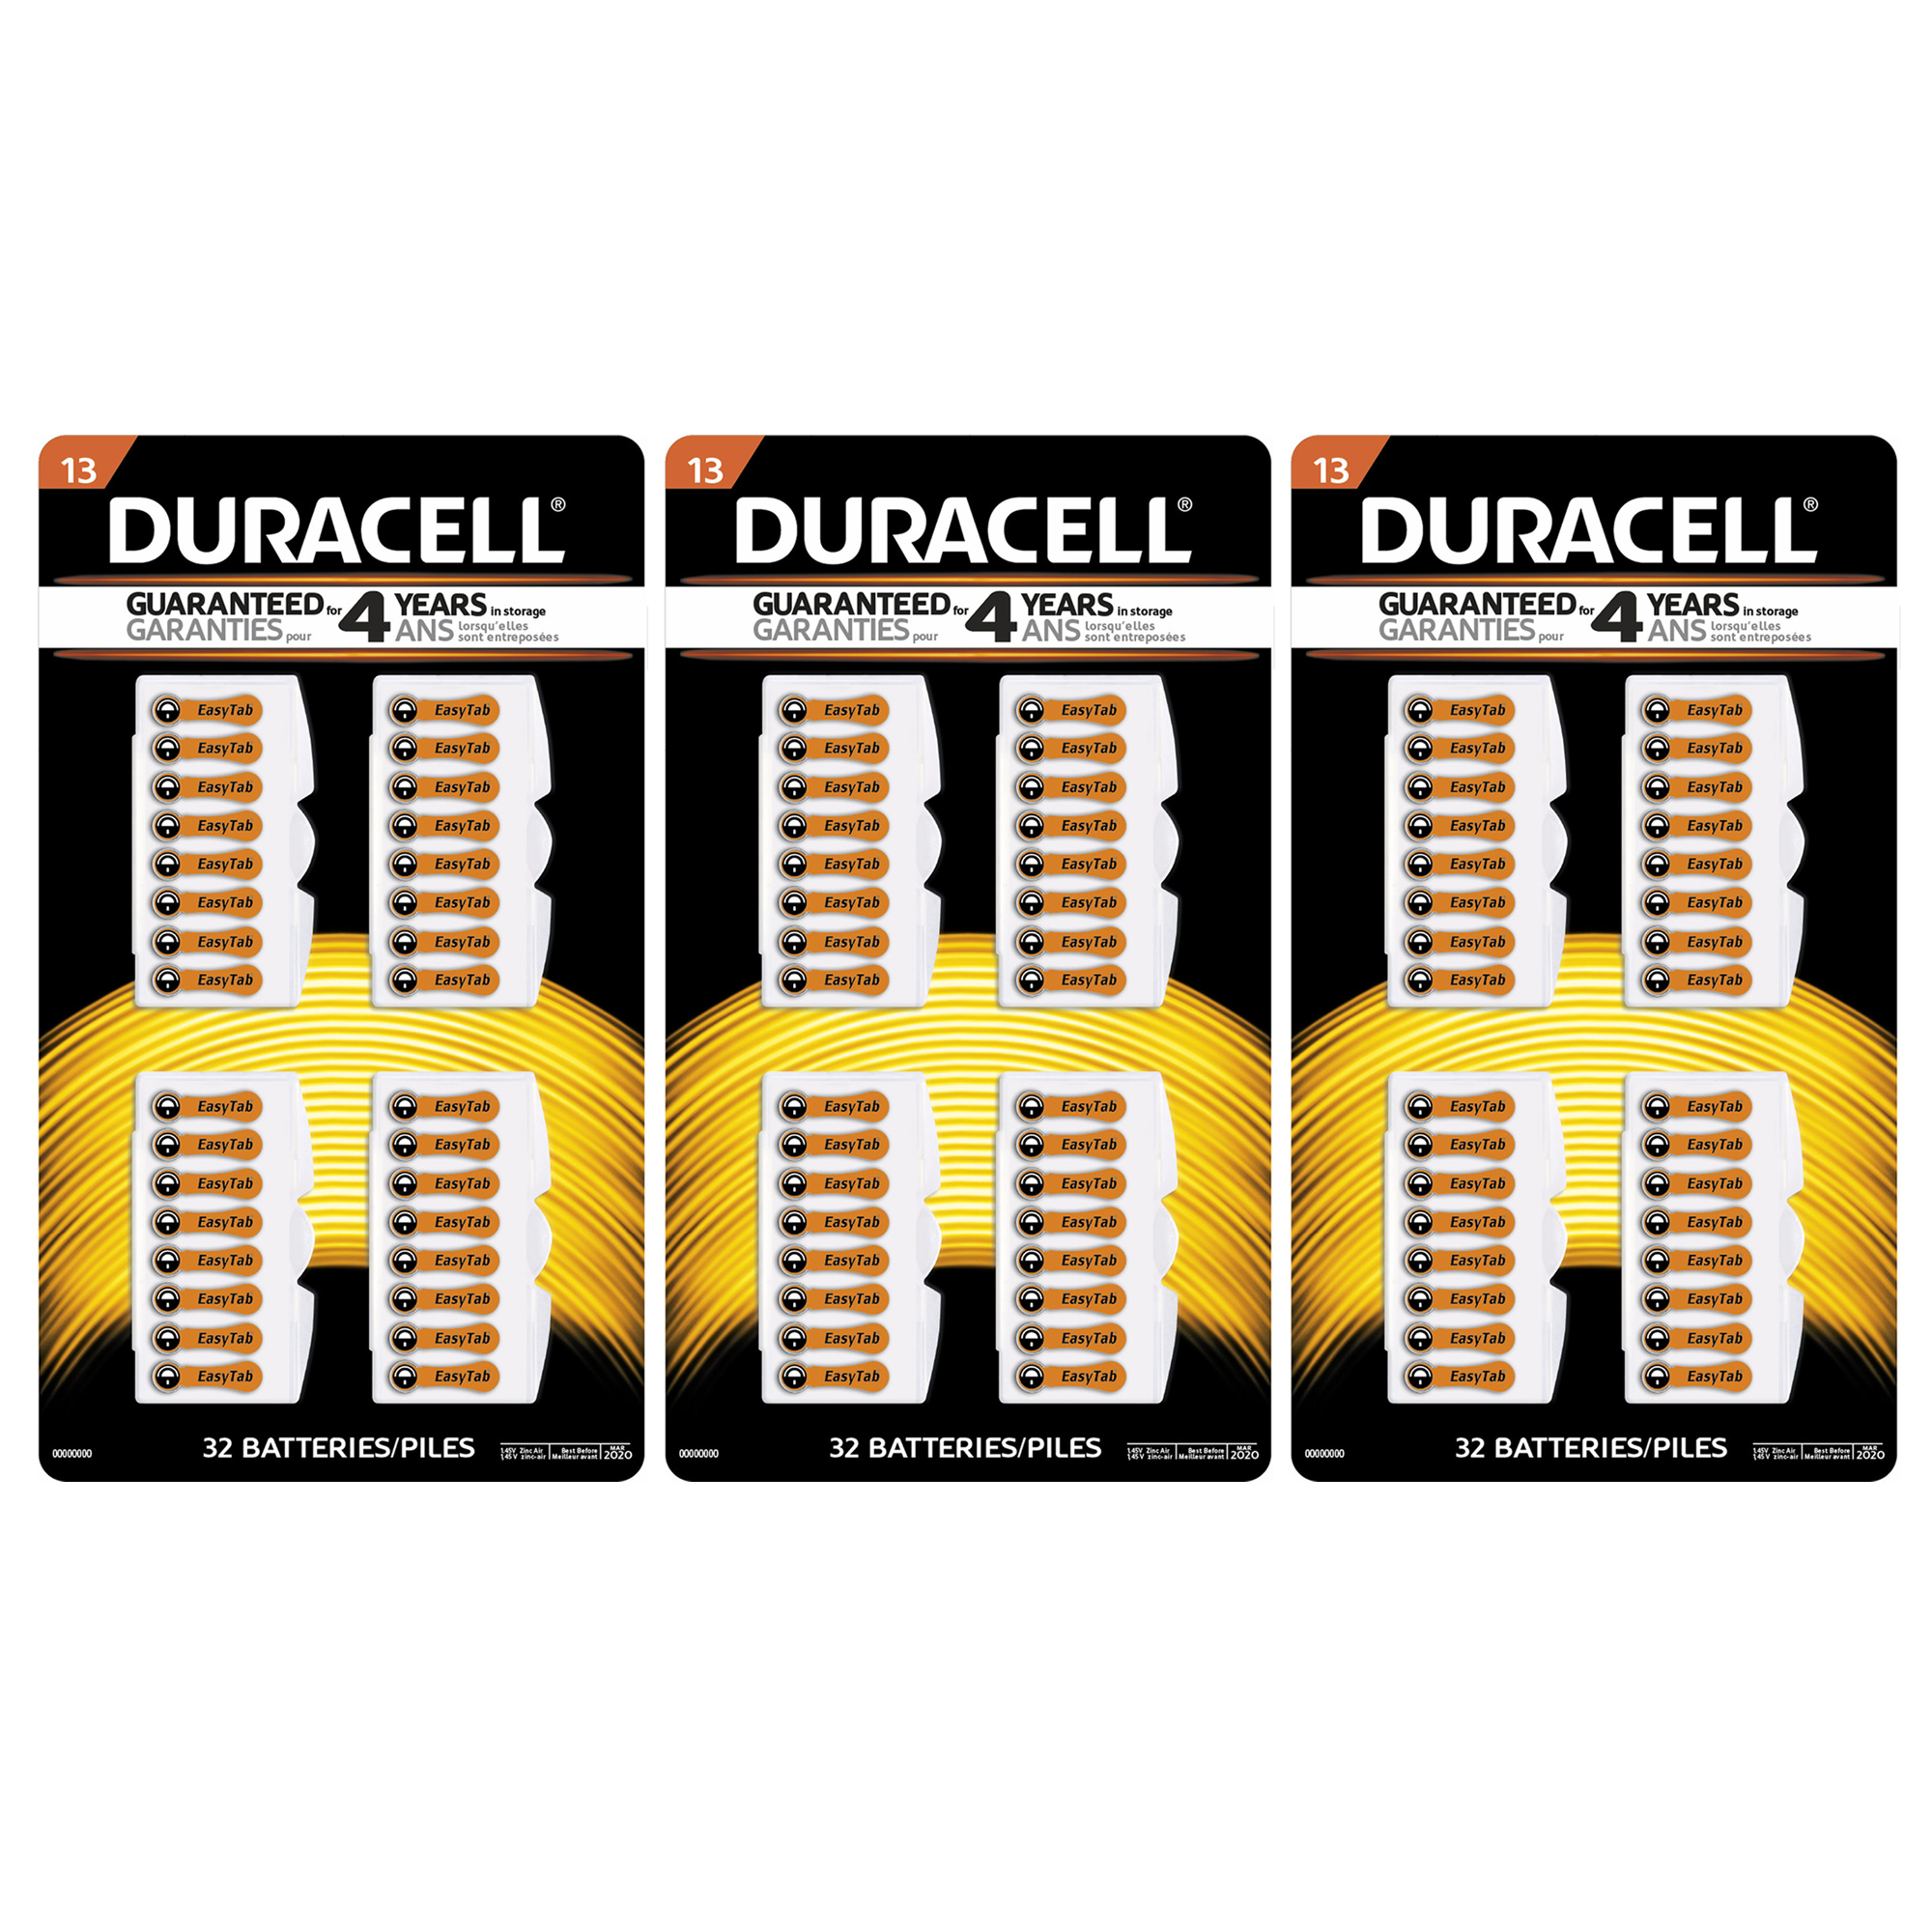 96pk duracell size 13 mercury free zinc air hearing aid battery 96pk duracell size 13 mercury free zinc air hearing aid battery da13b32zm fandeluxe Choice Image